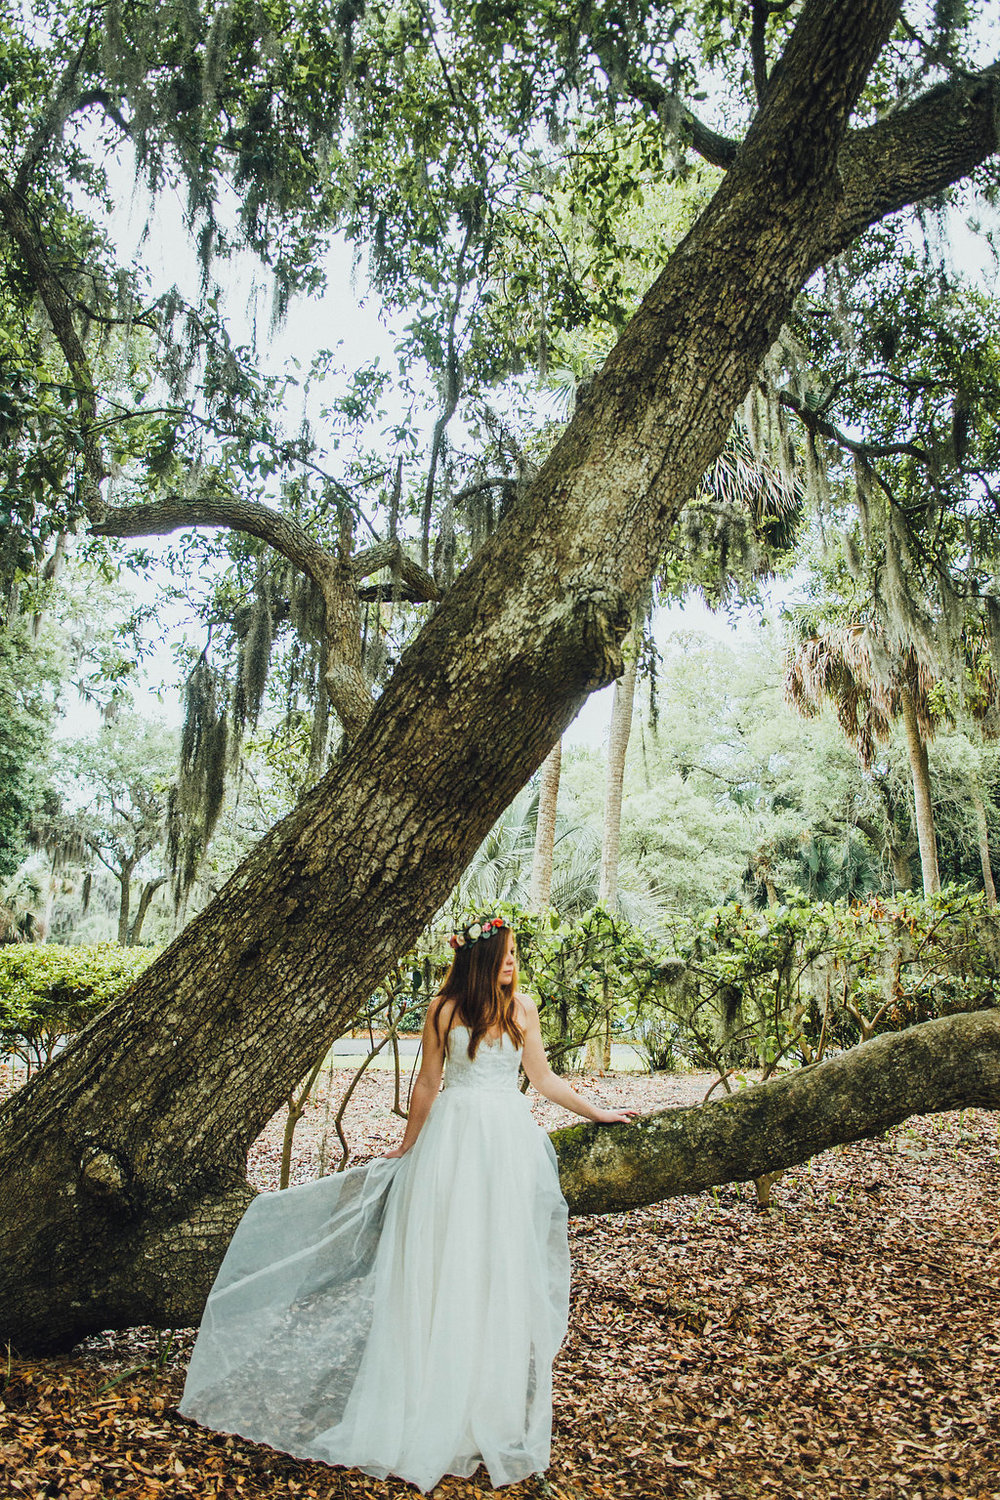 Urban-Poppy-Southern-Wedding-Mallory-and-Justin-photography-ivory-and-beau-bridal-boutique-sarah-seven-marion-boho-bride-indie-bride-indie-wedding-dress-savannah-weddings-hilton-head-weddings-beach-wedding-10.jpg